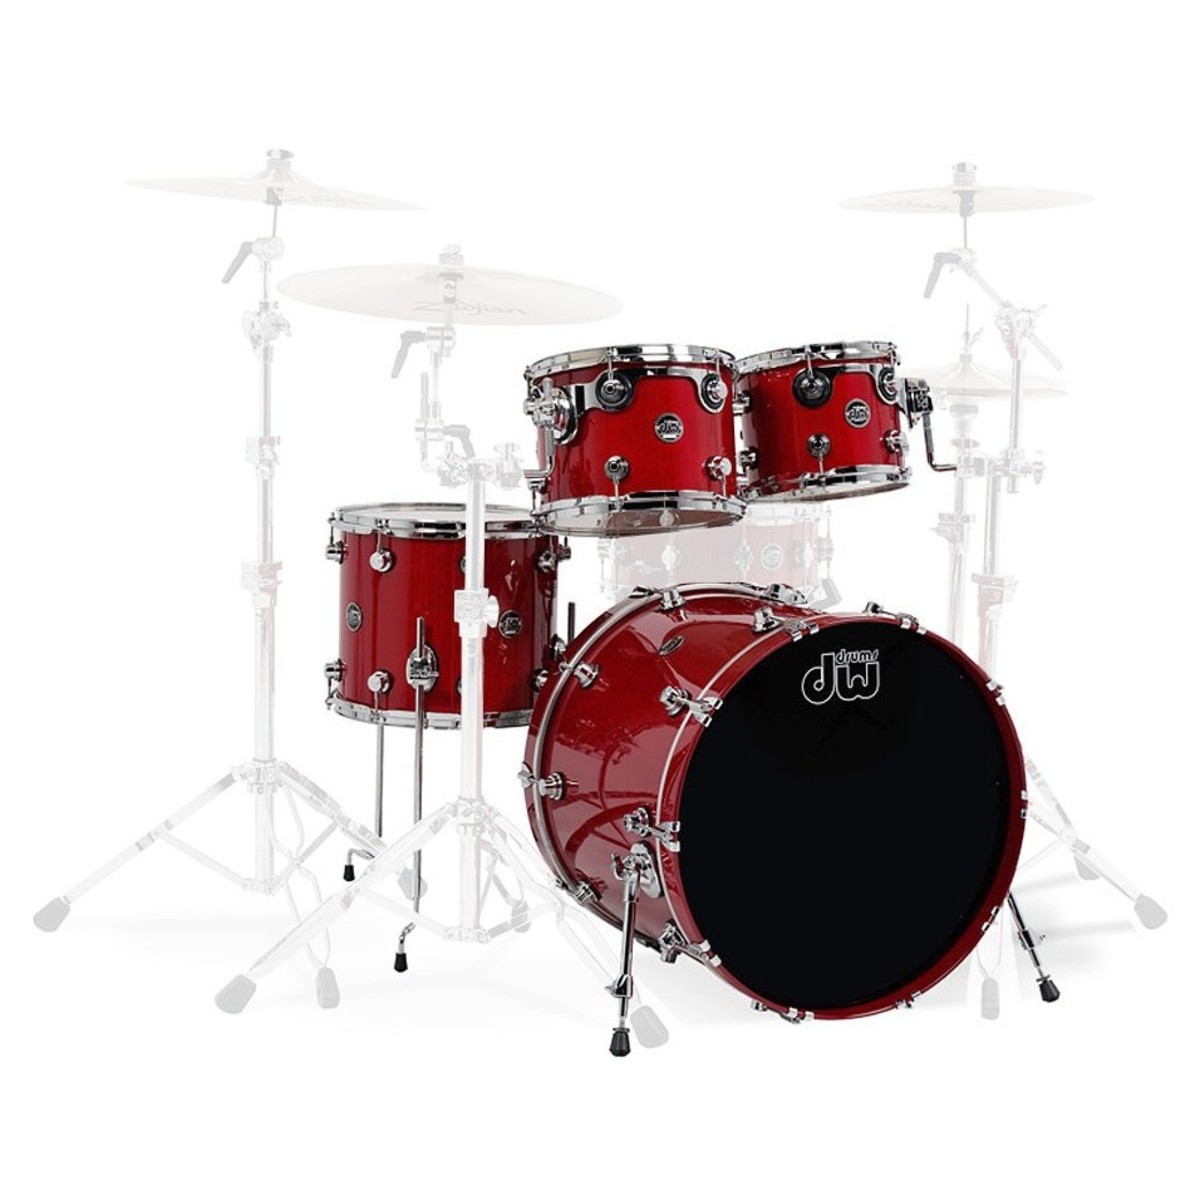 dw drums performance series 22 4 piece shell pack candy apple red at. Black Bedroom Furniture Sets. Home Design Ideas